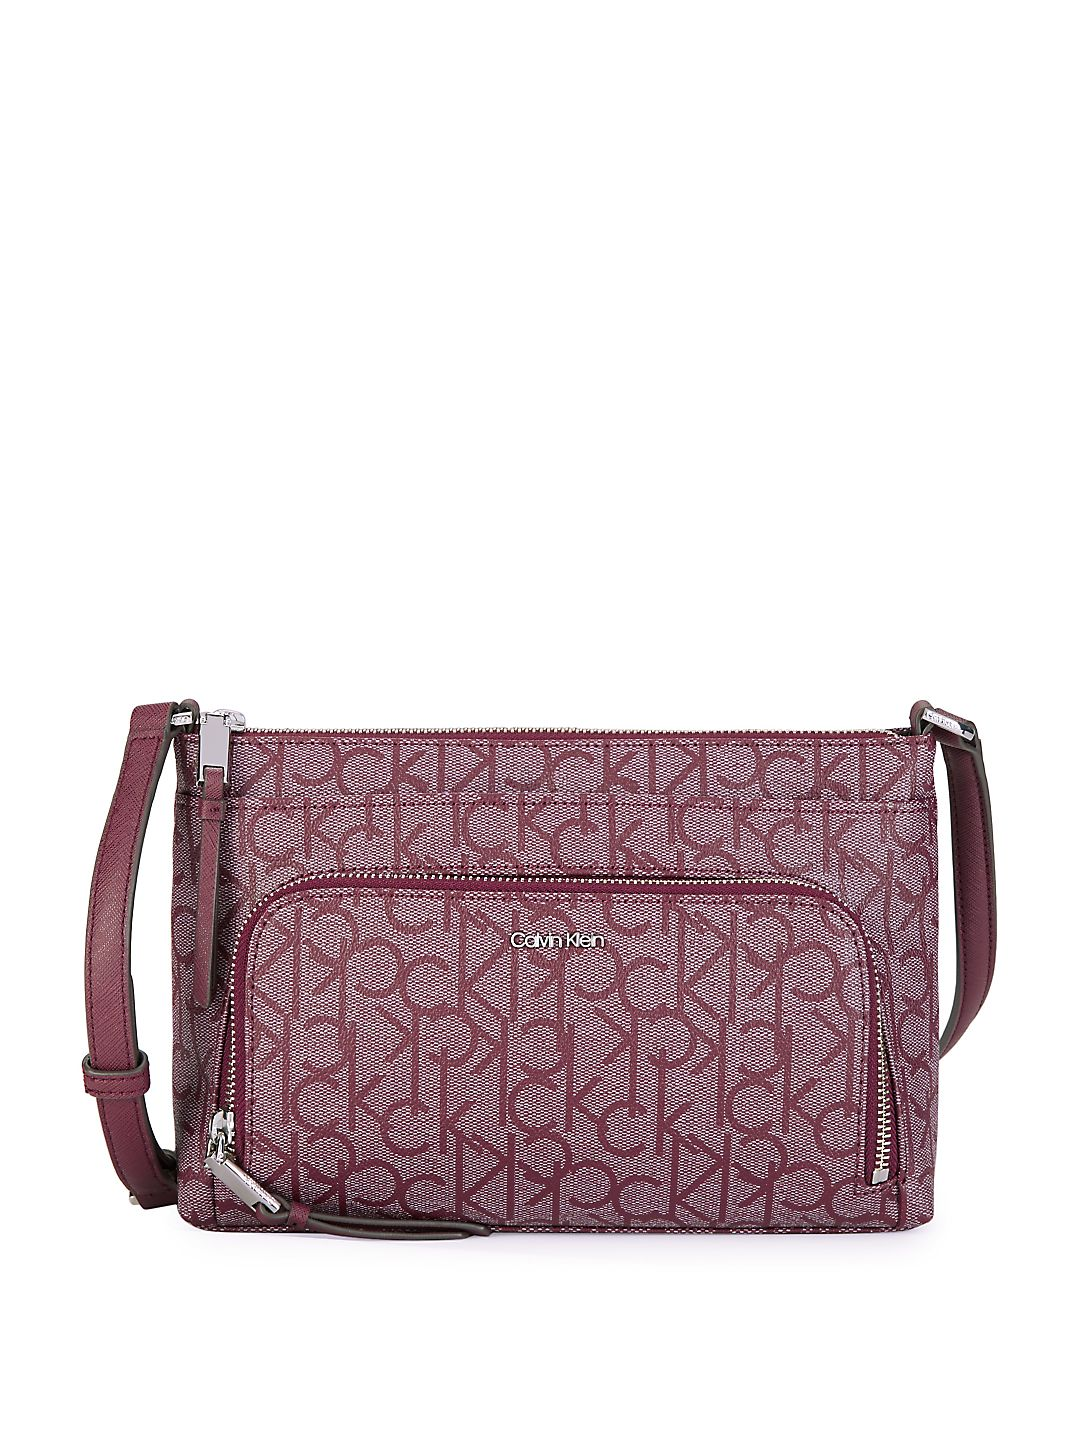 Calvin Klein - Classic Faux Leather Crossbody Bag - Walmart.com 5512466d89314